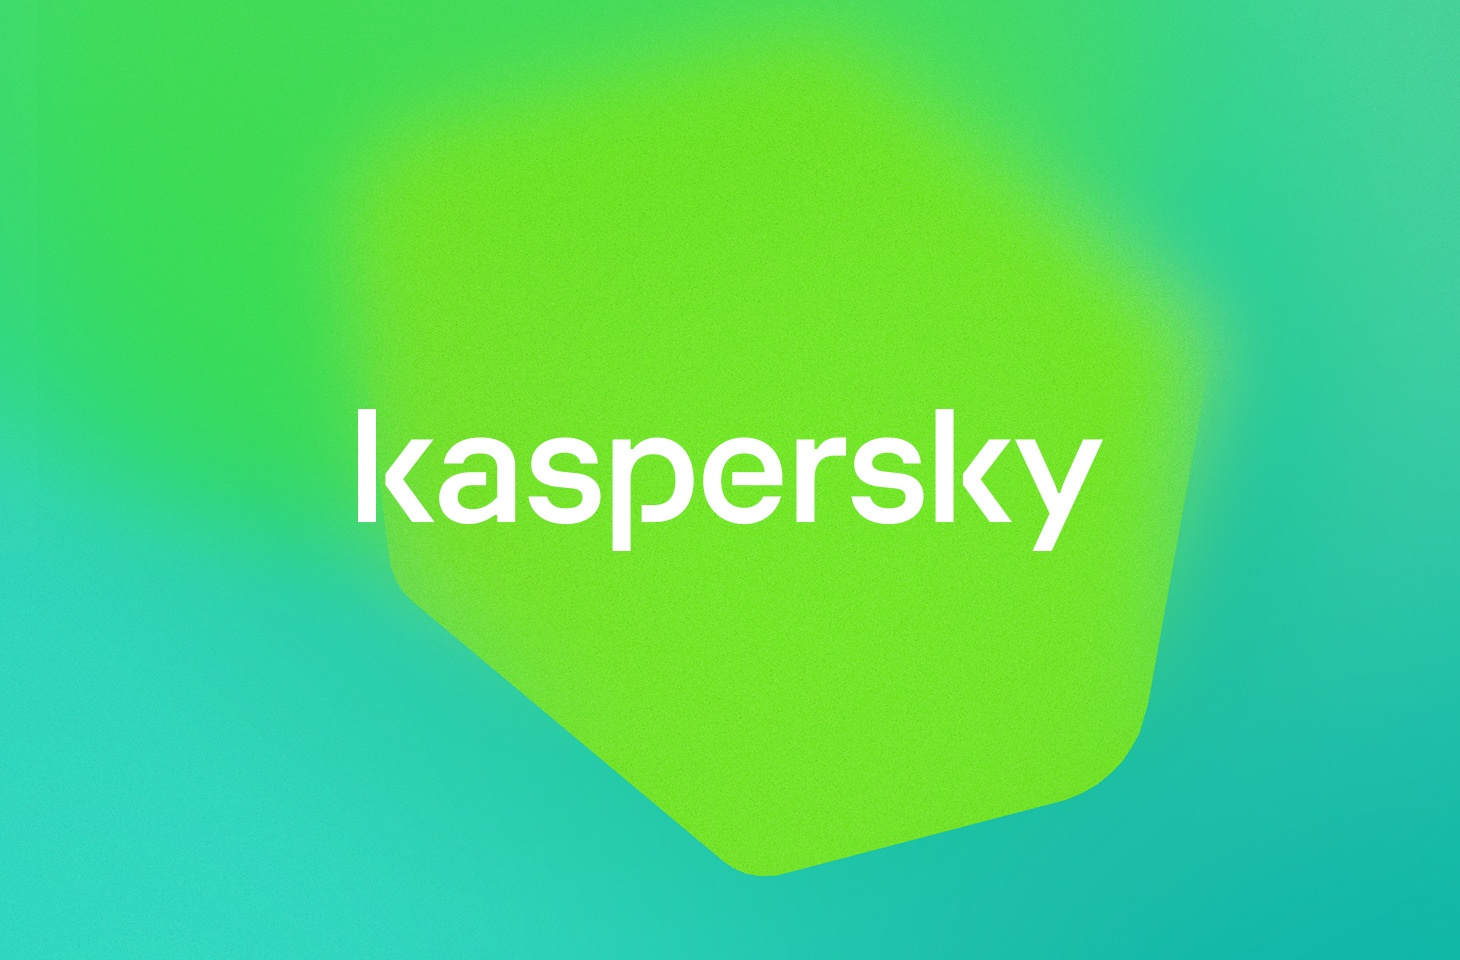 Kaspersky: minacce dietro serie TV e film in nomination